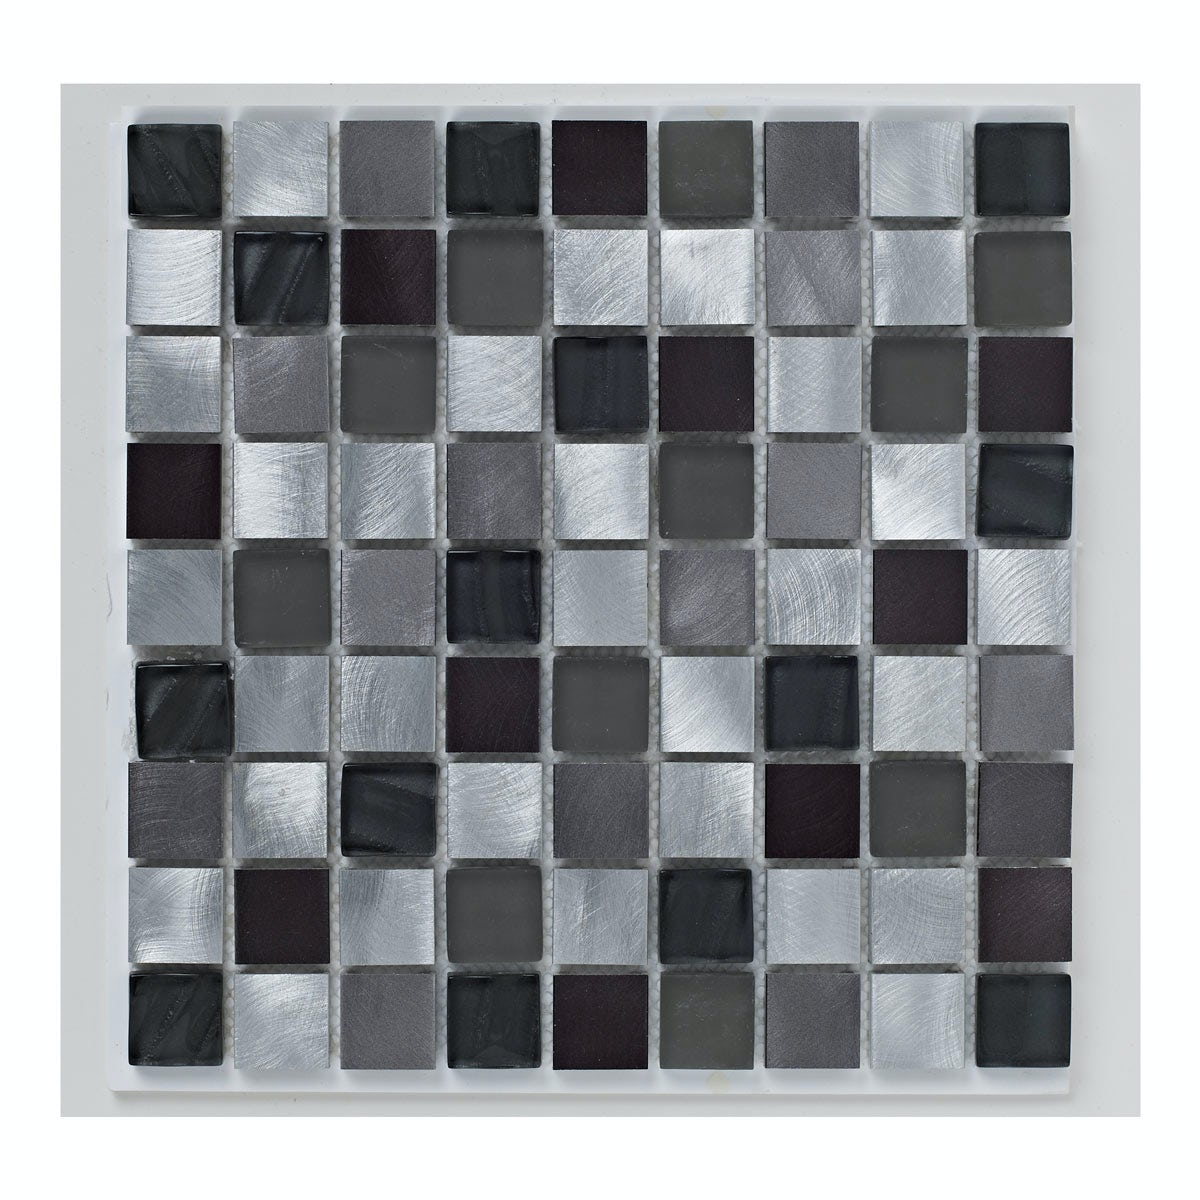 British Ceramic Tile Mosaic metallic black gloss tile 305mm x 305mm - 1 sheet